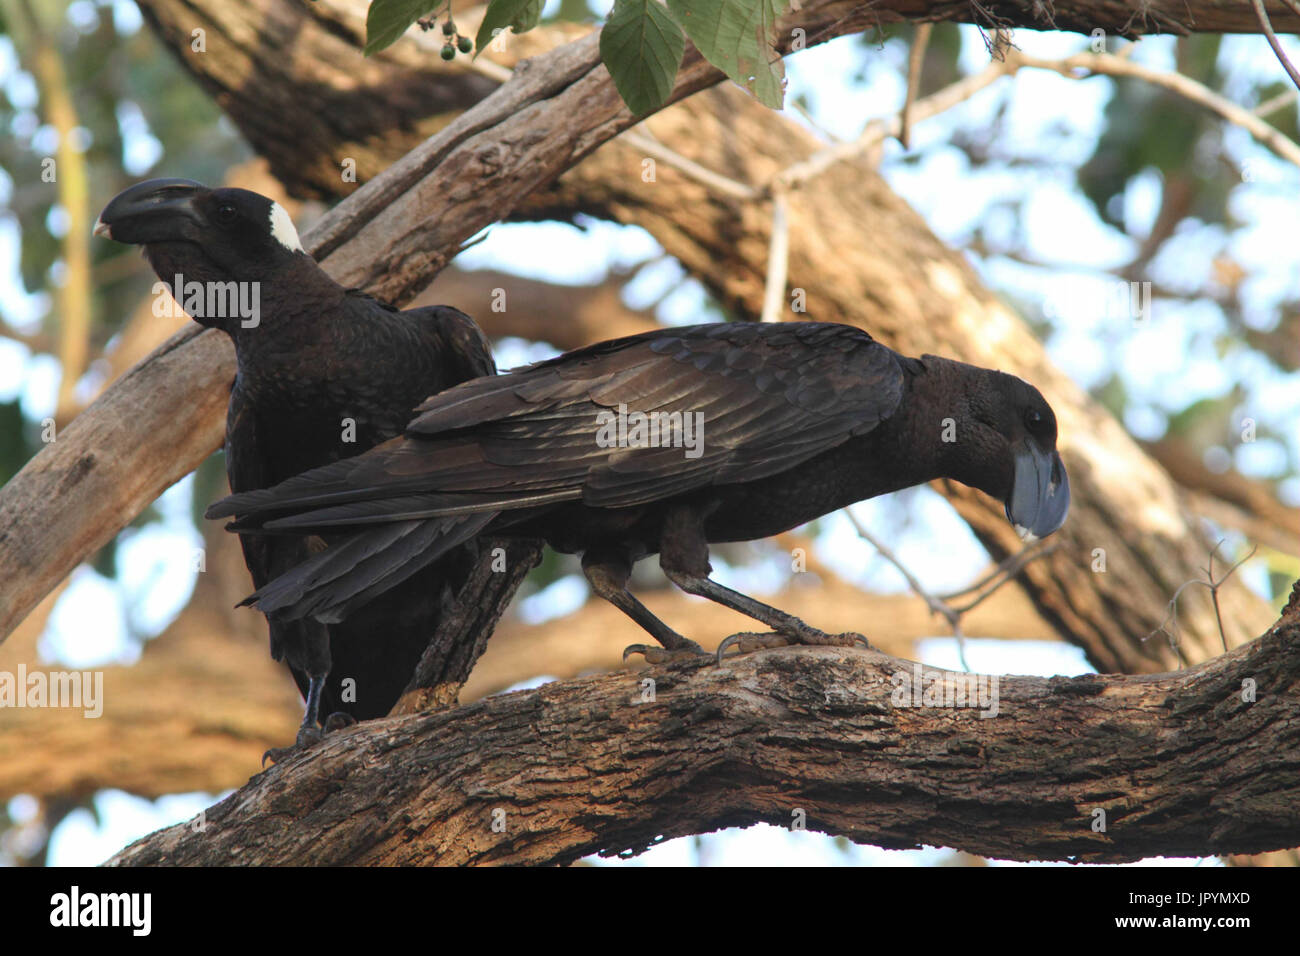 Thick-billed Ravens on a branch - Ethiopia - Stock Image